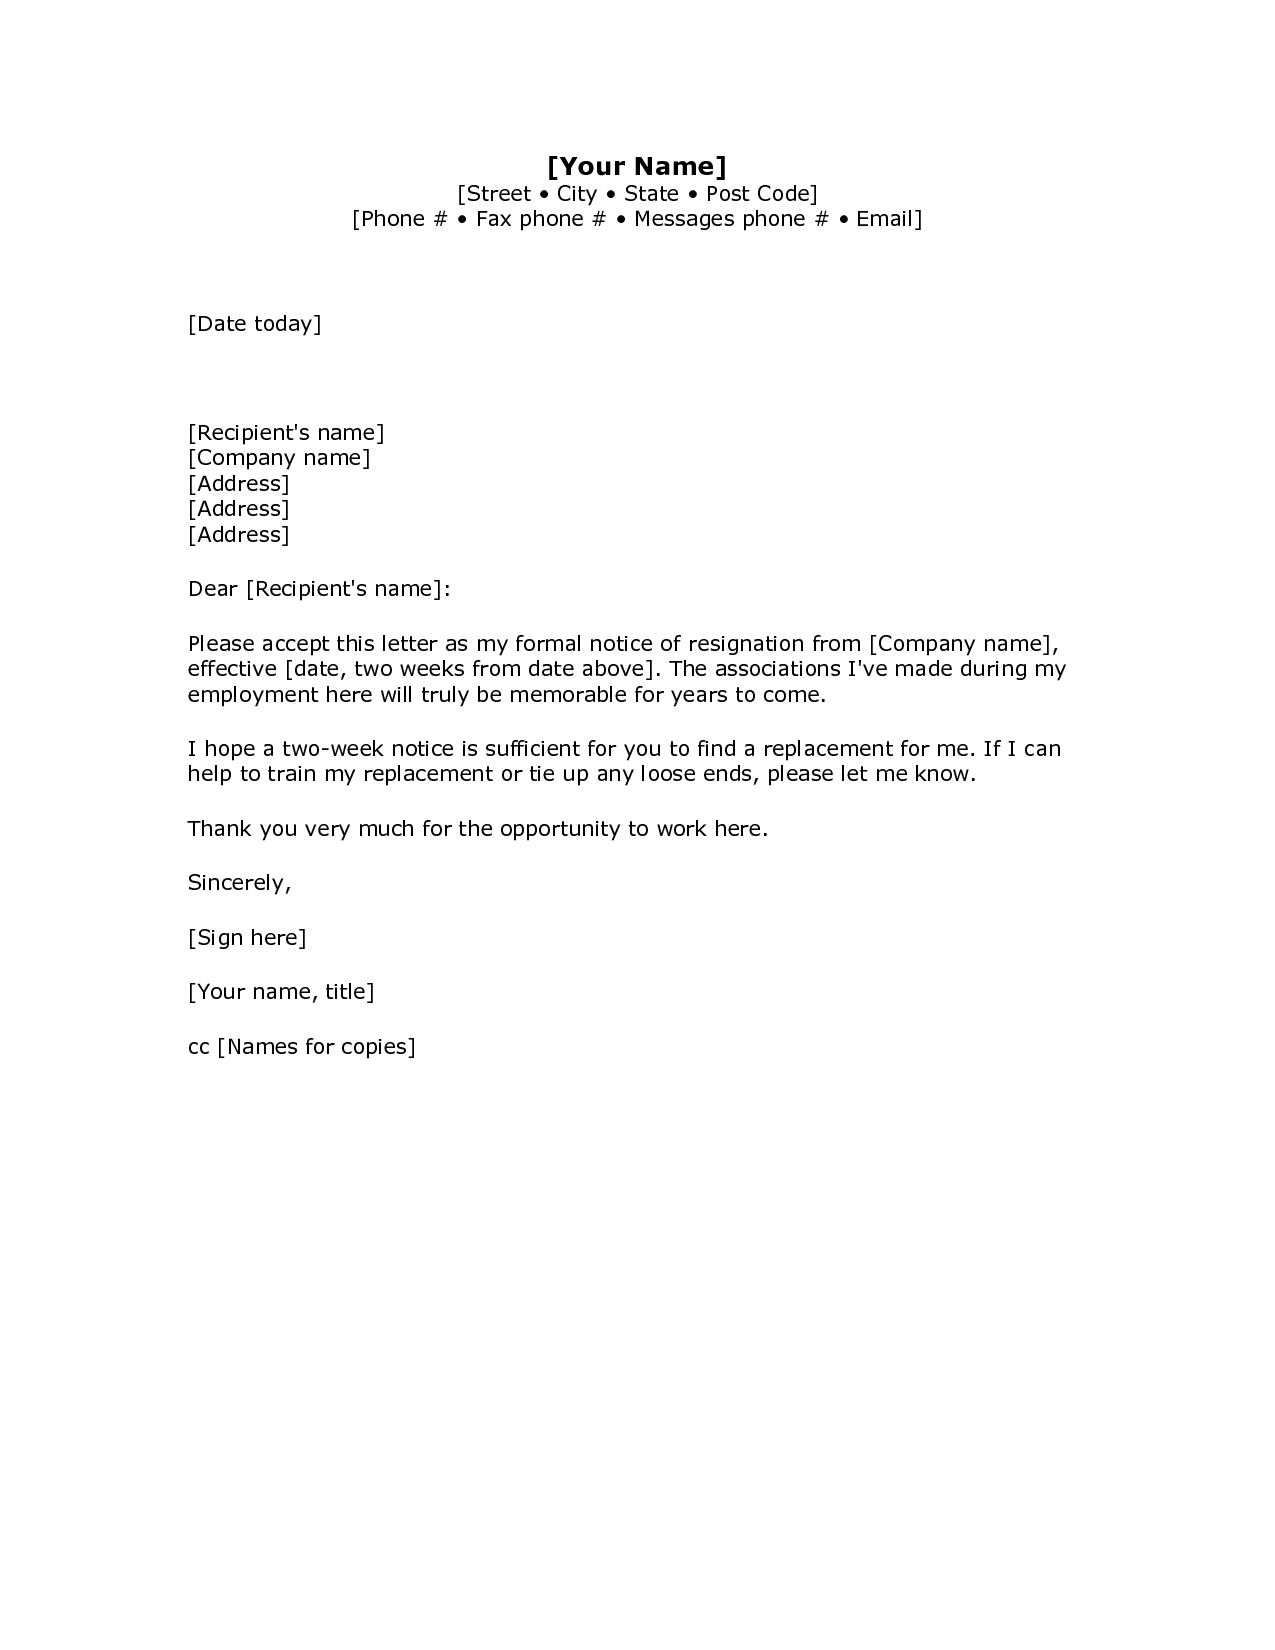 cease and desist letter template amazon example-2 Weeks Notice Letter Resignation Letter Week Notice Words HDWriting A Letter Resignation Email Letter Sample 1-p